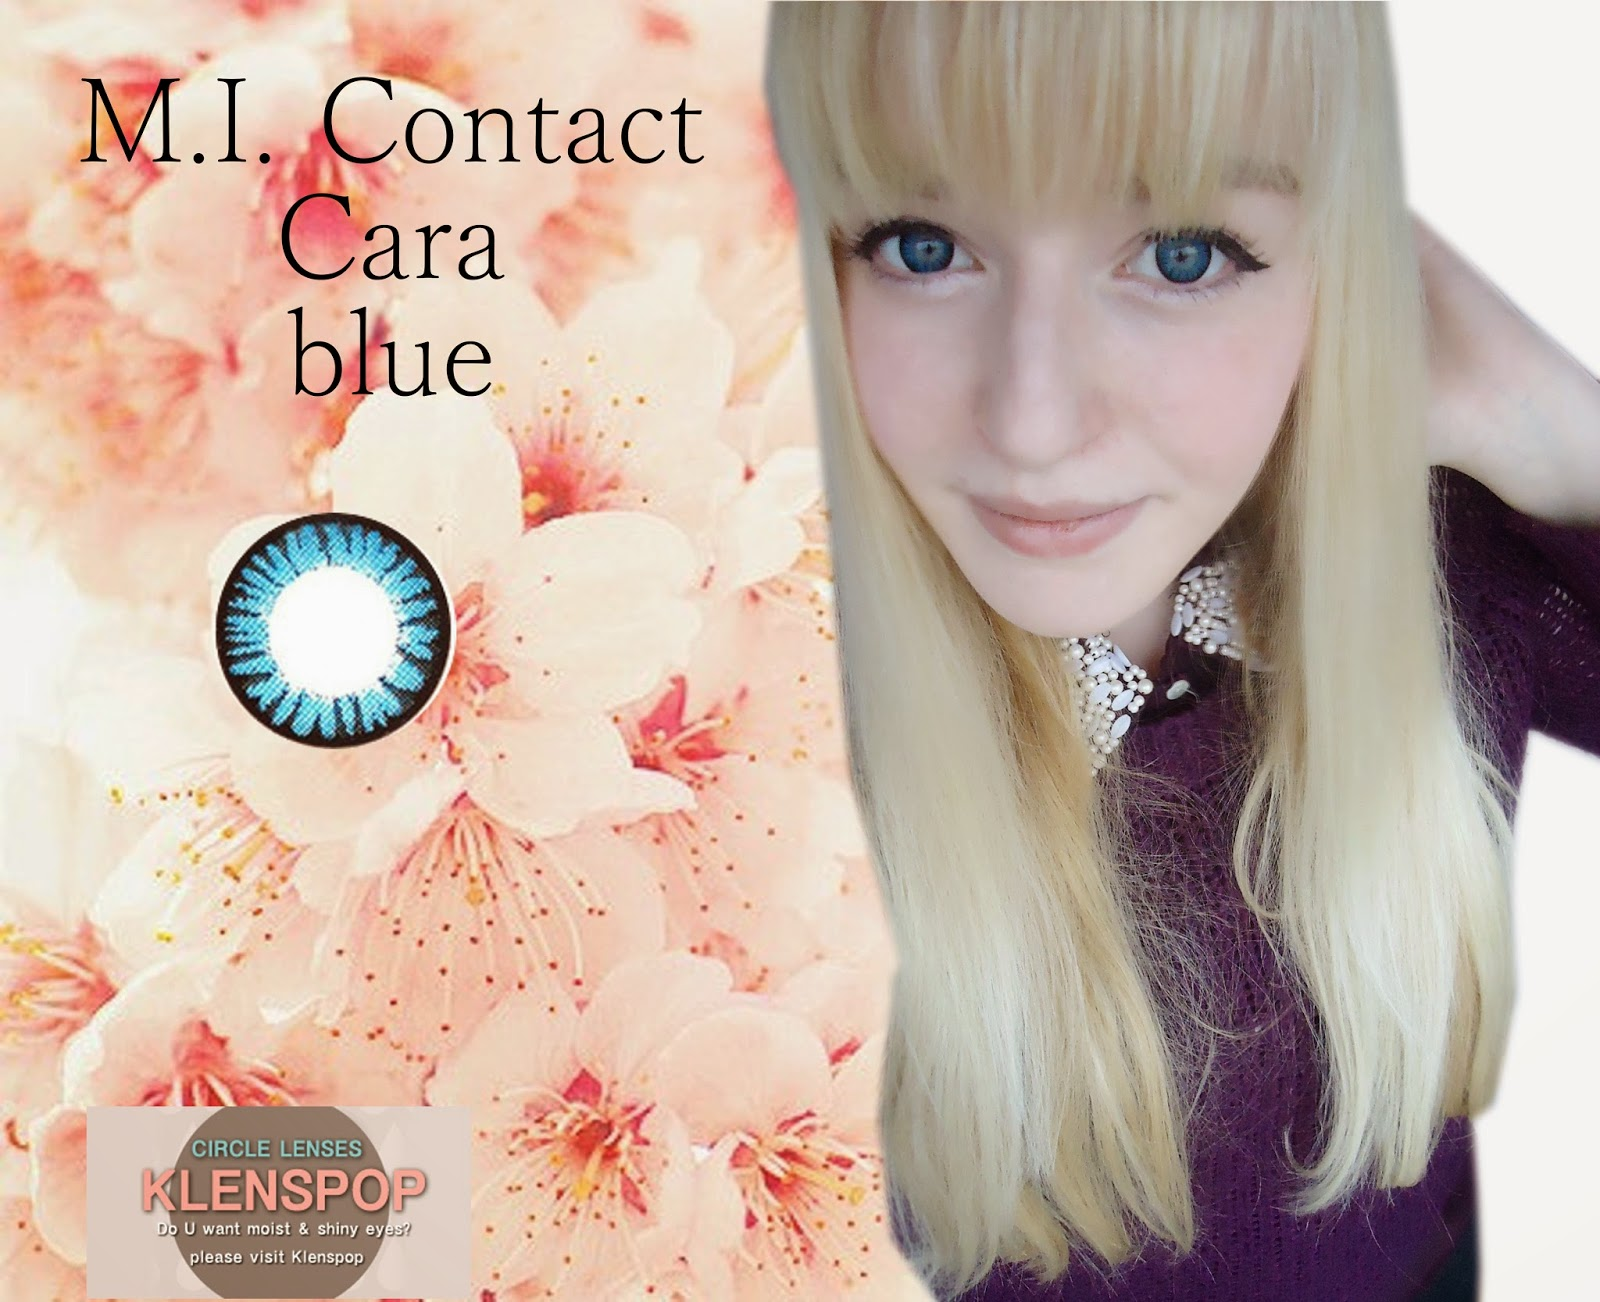 http://klenspop.com/en/home/375-cara-blue.html?search_query=cara&results=7